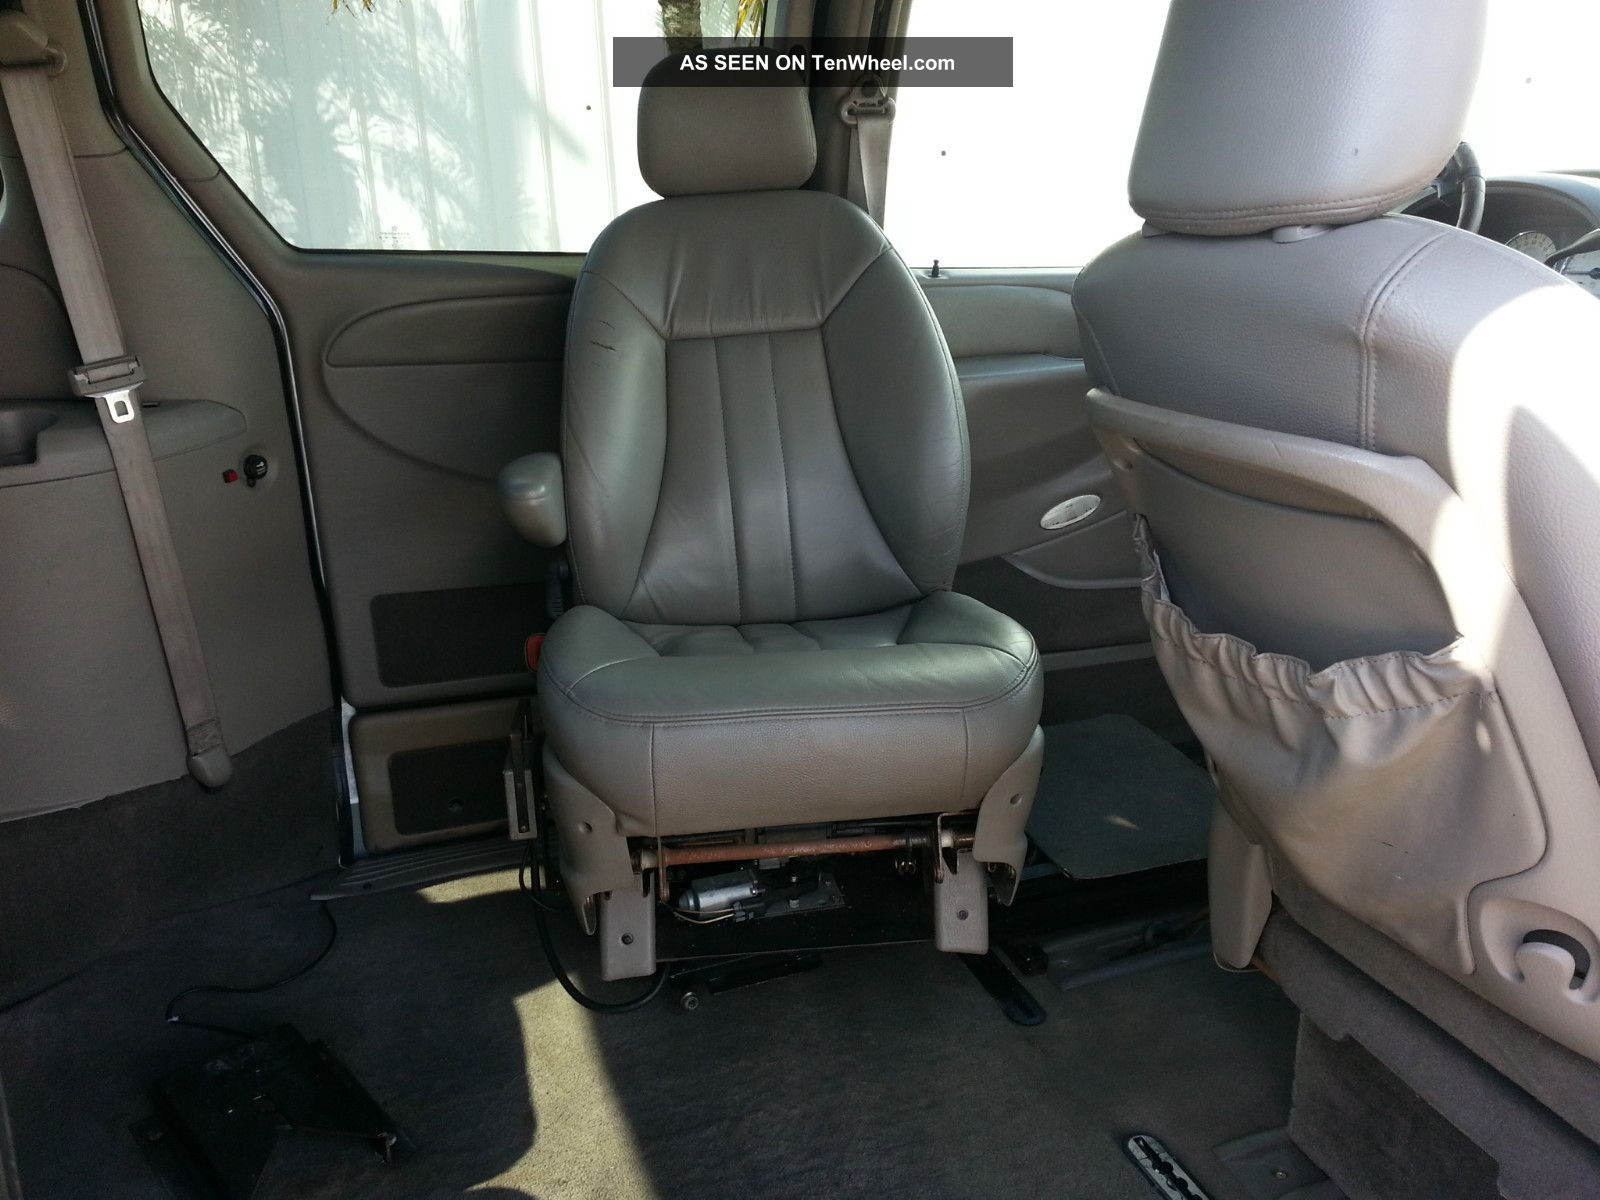 Mercedes Benz Minivan >> 2003 Chrysler Town & Country Braun Handicap Conversion ...